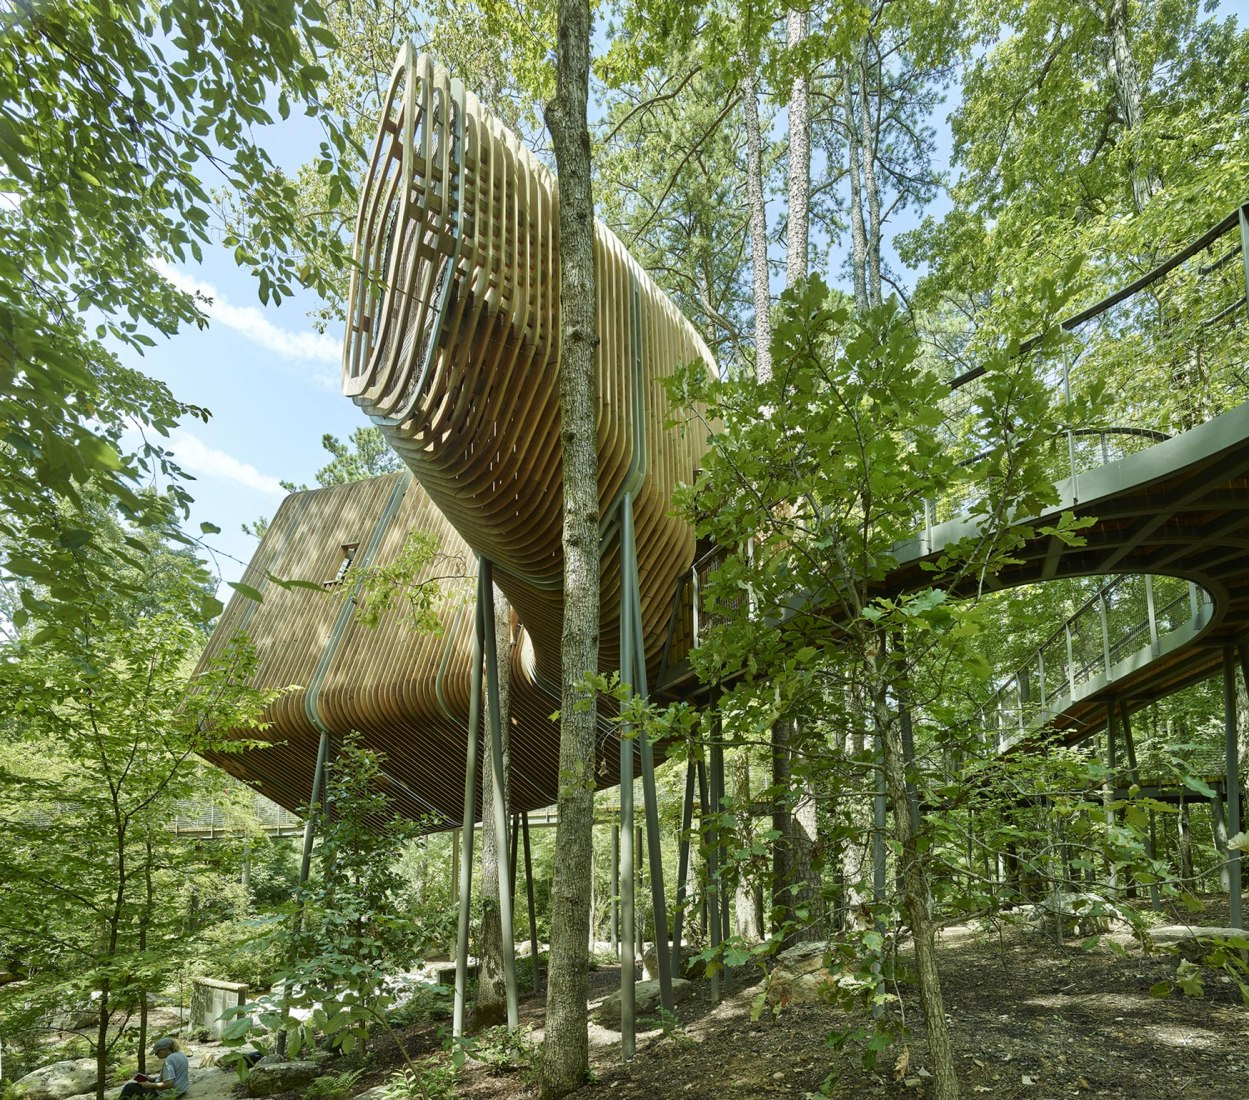 The Evans Tree House at Garvan Woodland Gardens by modus studio and the University of Arkansas. Photograph by Timothy Hursley.